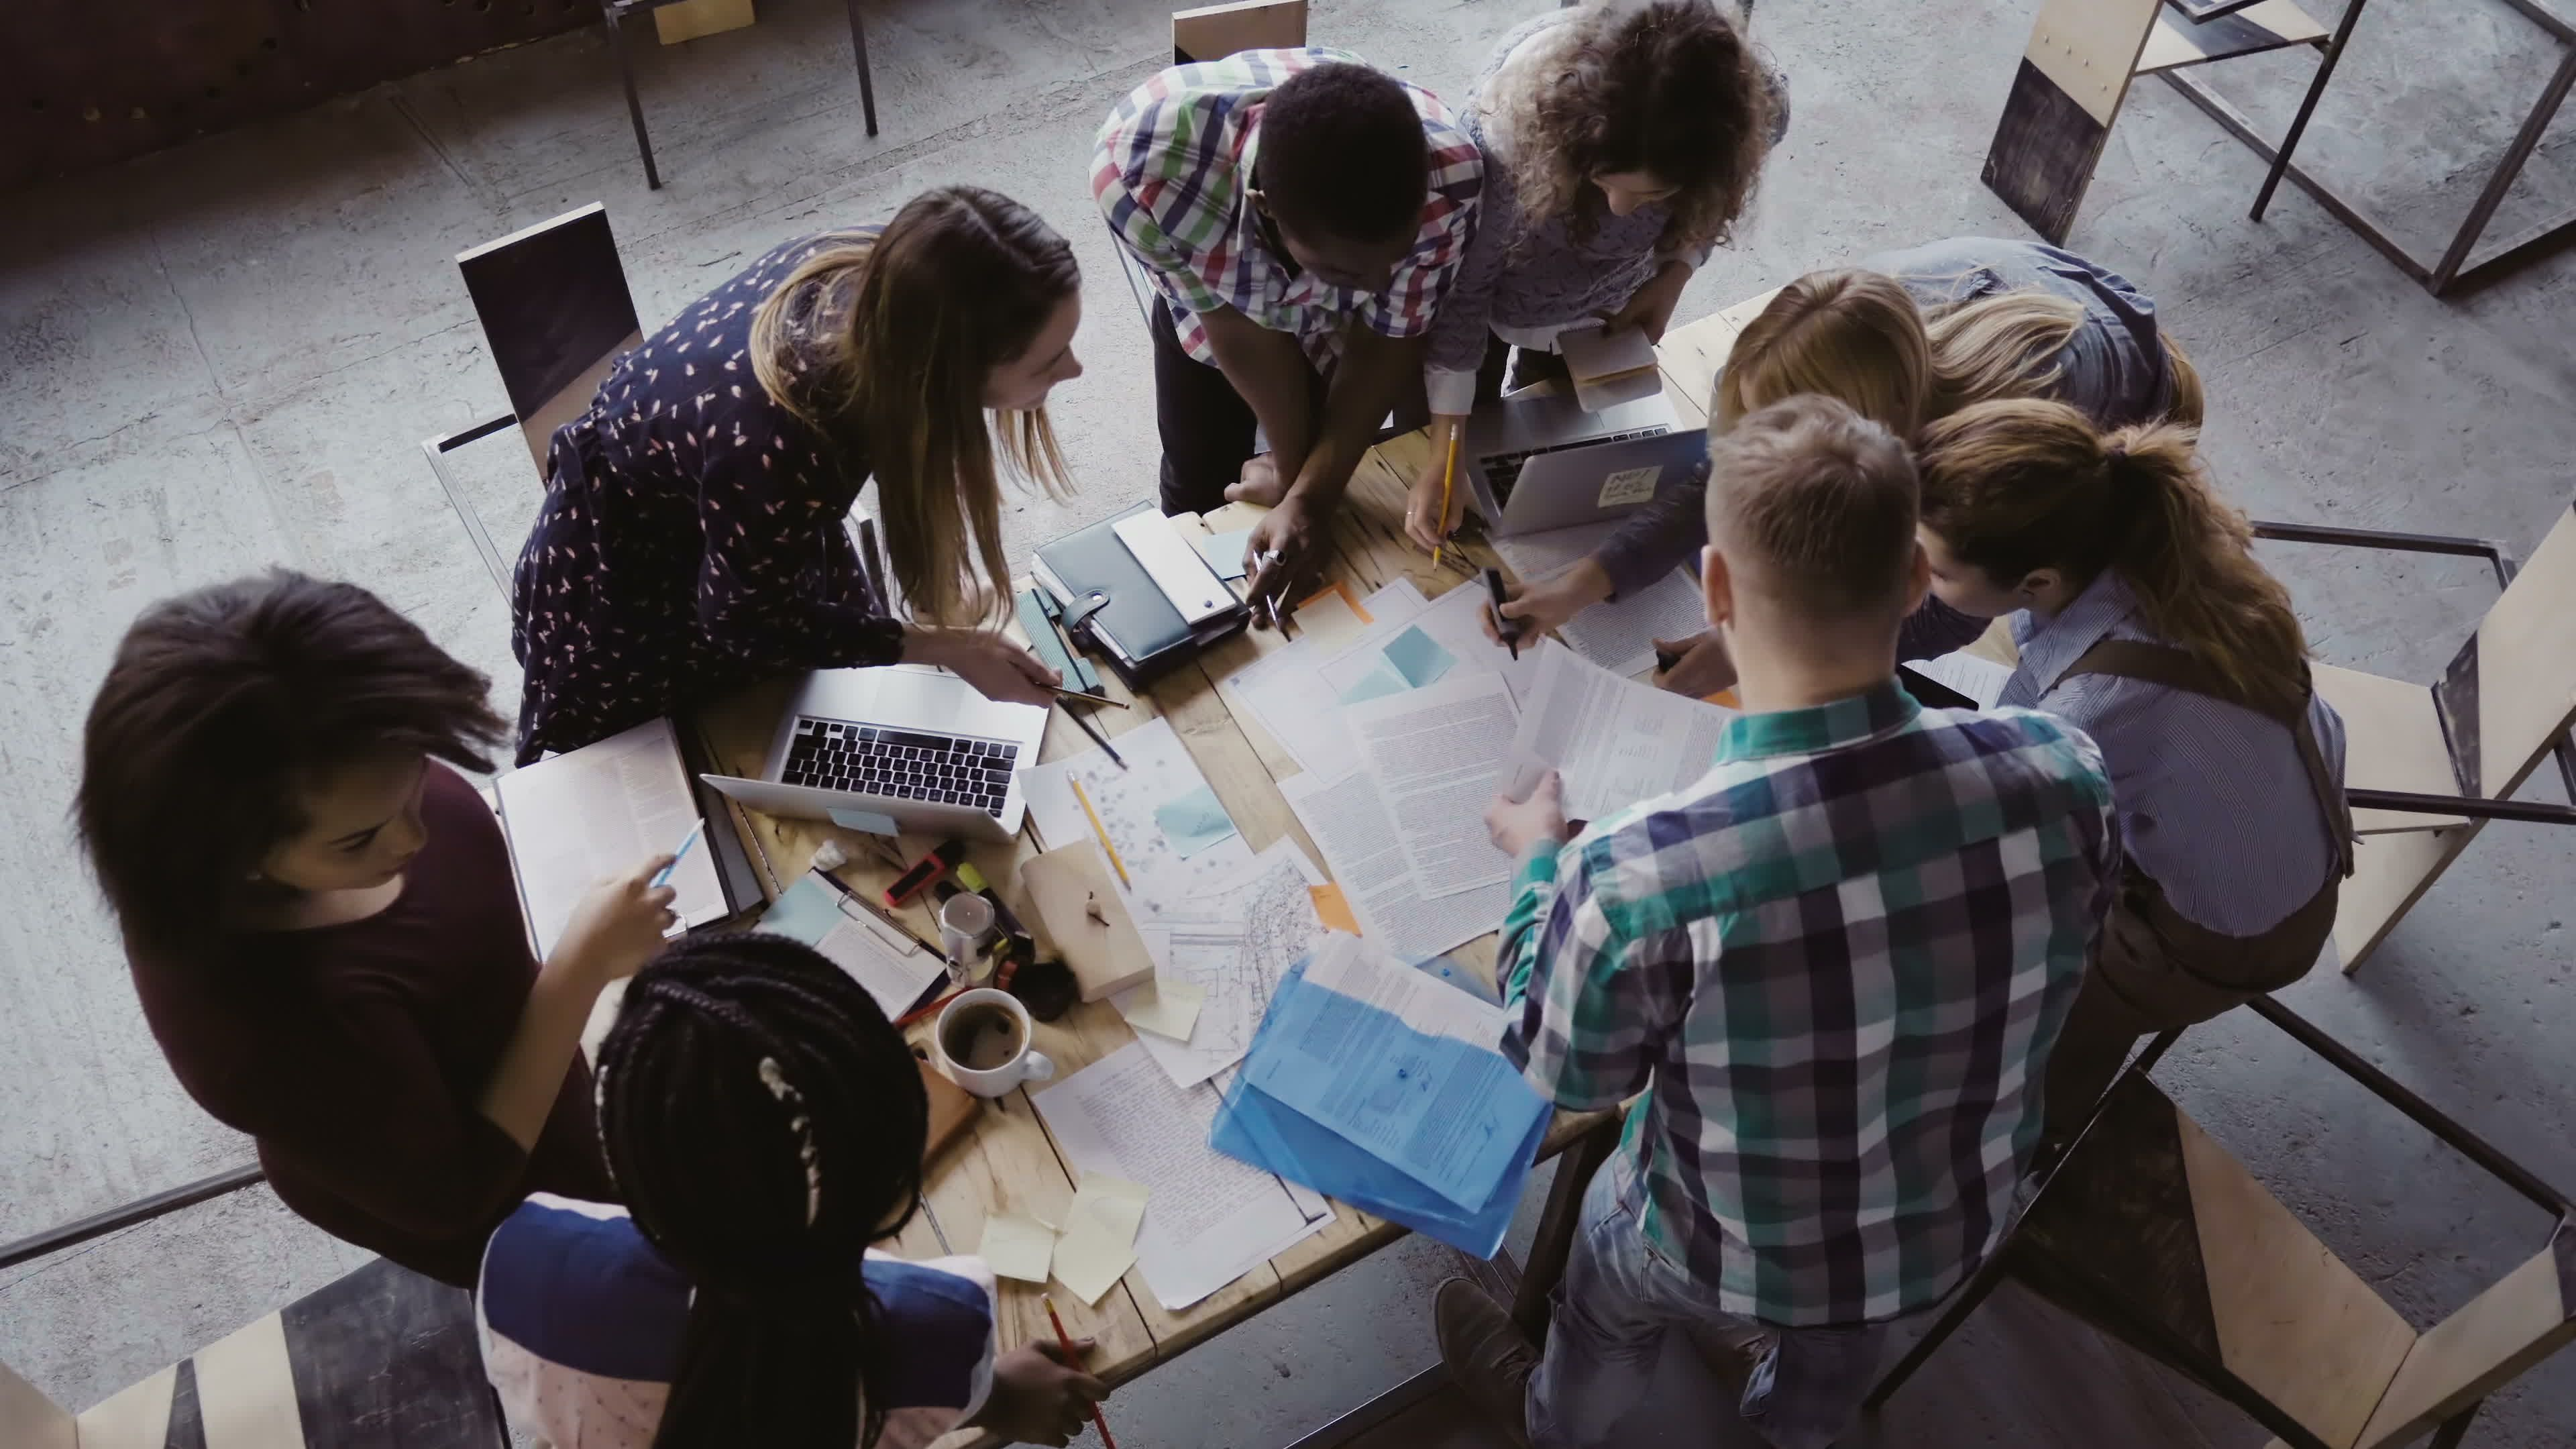 Manager Tips To Keep Millennial Employees